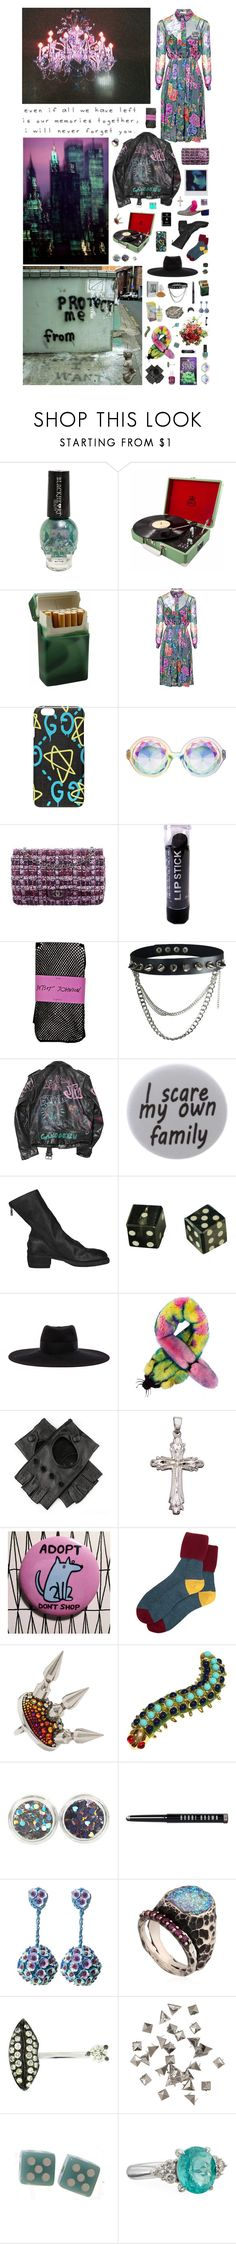 """""""Young girl or really strange woman diving in my punk rainbow: playing with me you'll never find the right card."""" by nothingisnormal ❤ liked on Polyvore featuring Matthew Williamson, Gucci, Chanel, Betsey Johnson, Humör, Guidi, Maison Michel, Liska, Black and BillyTheTree"""